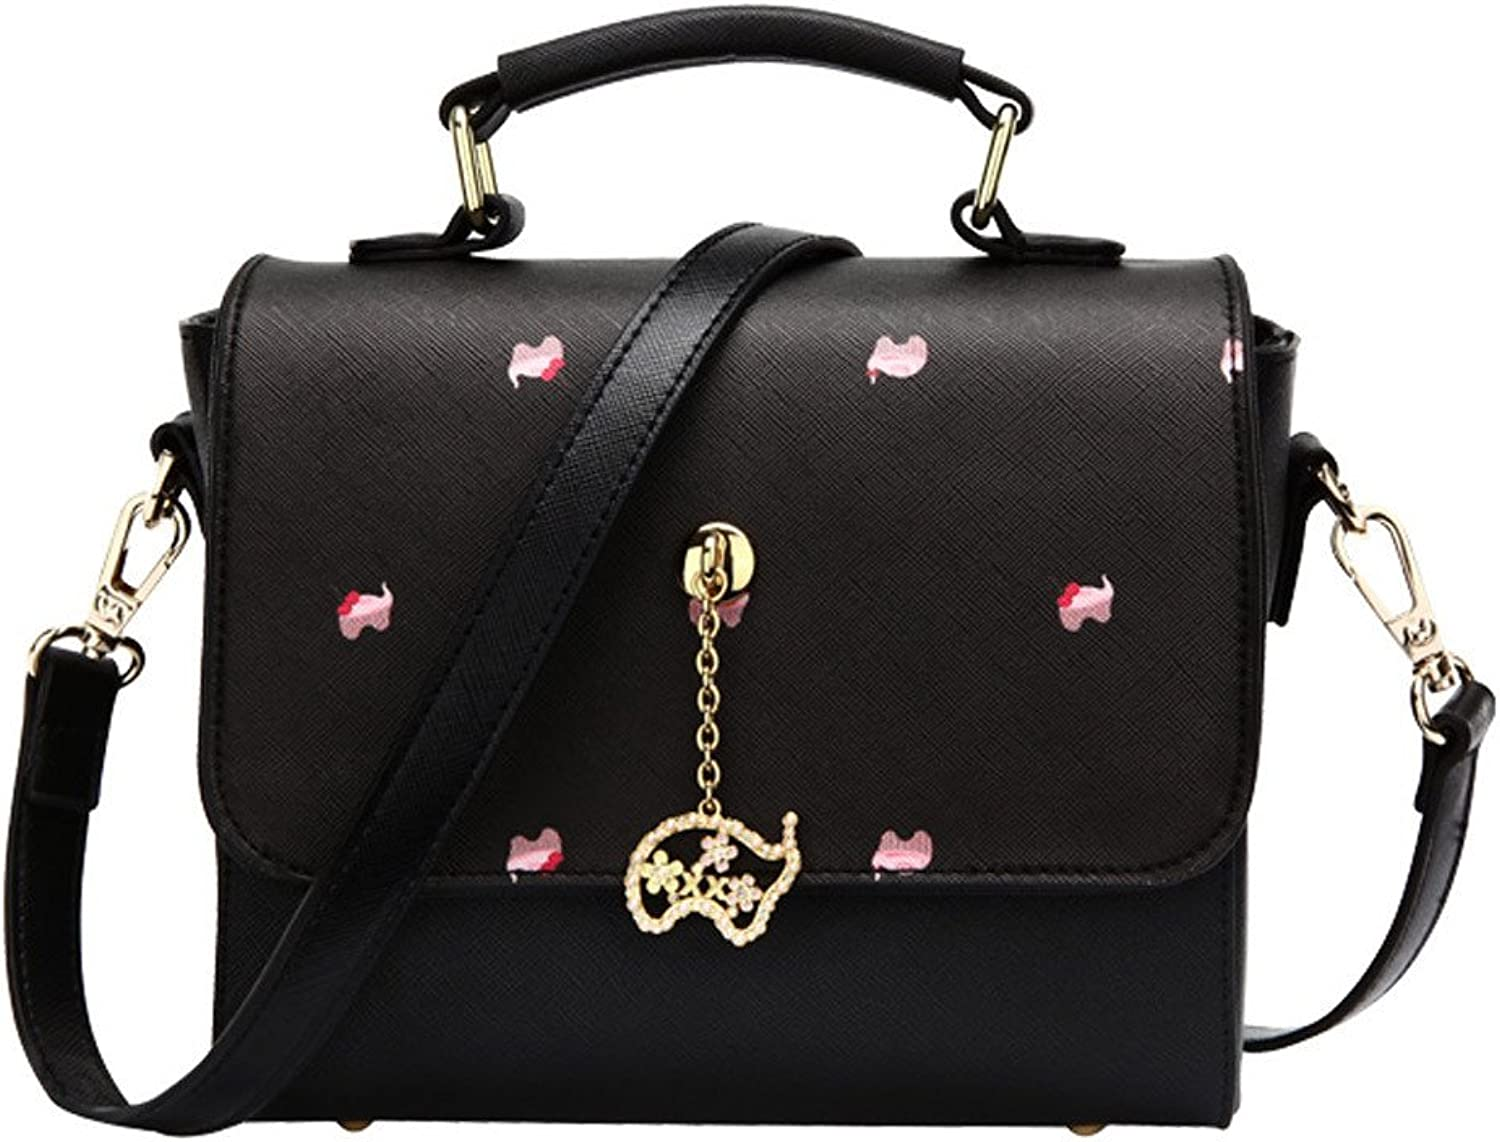 Olici in Summer The Sachet Bag The Fairy Bag The Student The Joker The Simple Satchel